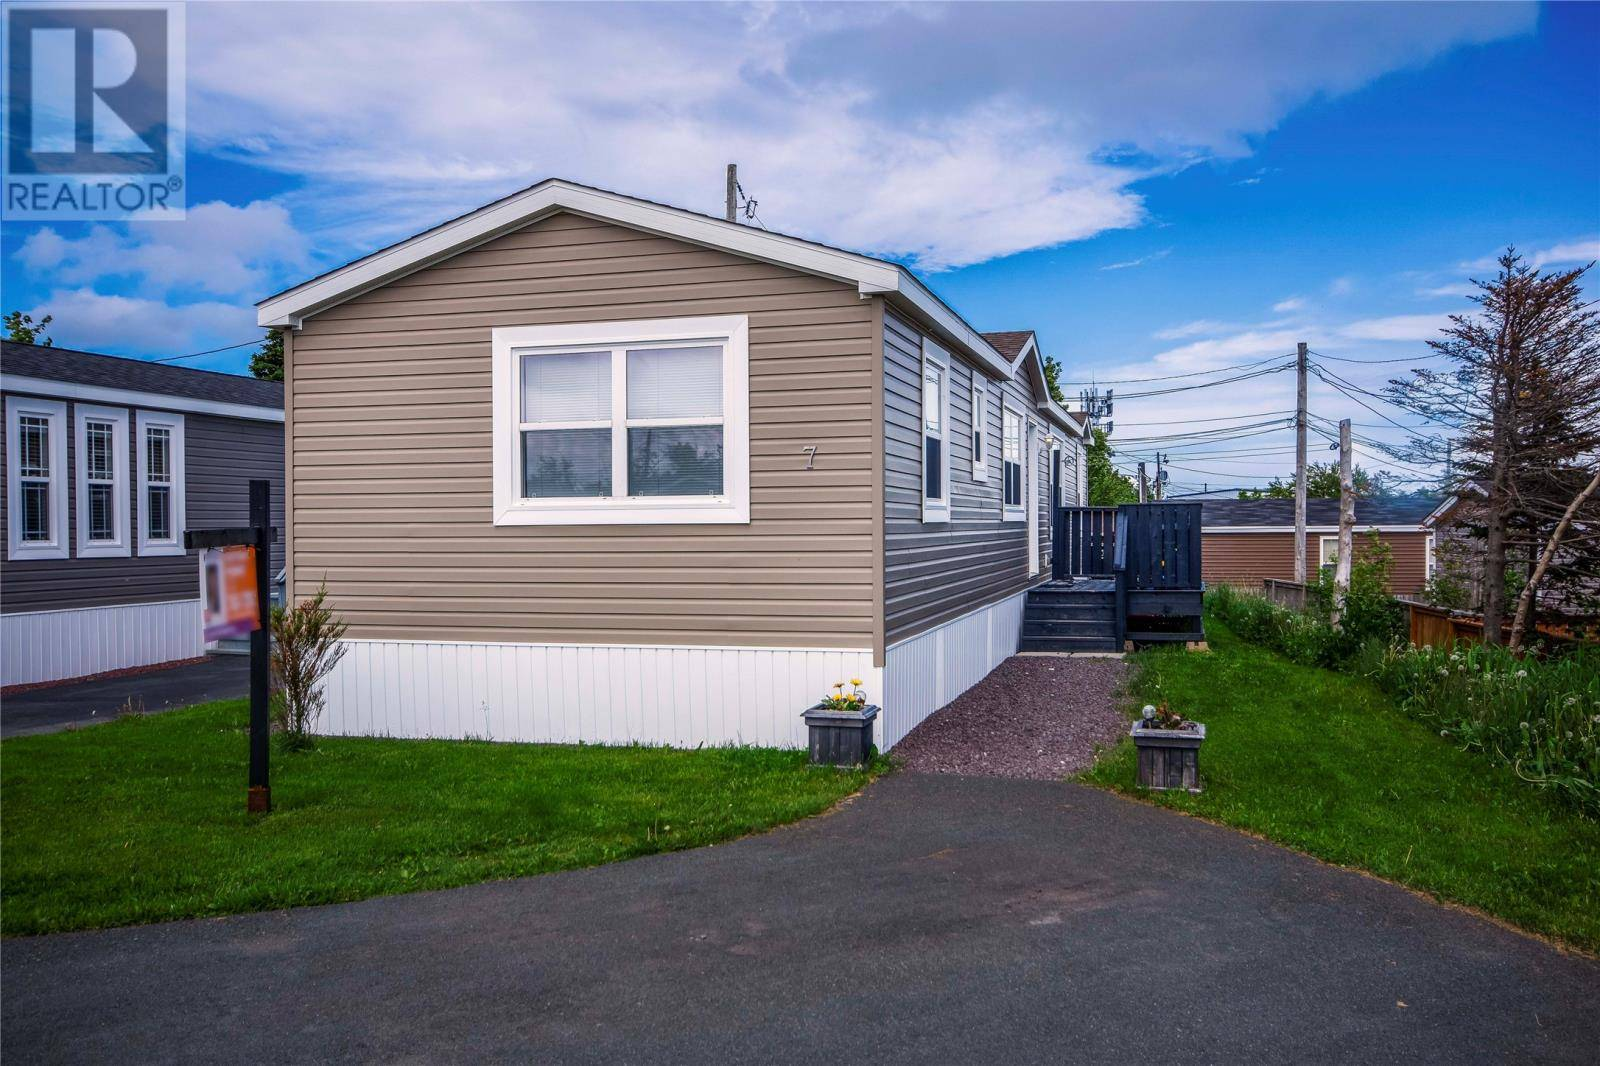 House for sale at 7 Rhaye Pl St. John's Newfoundland - MLS: 1209627